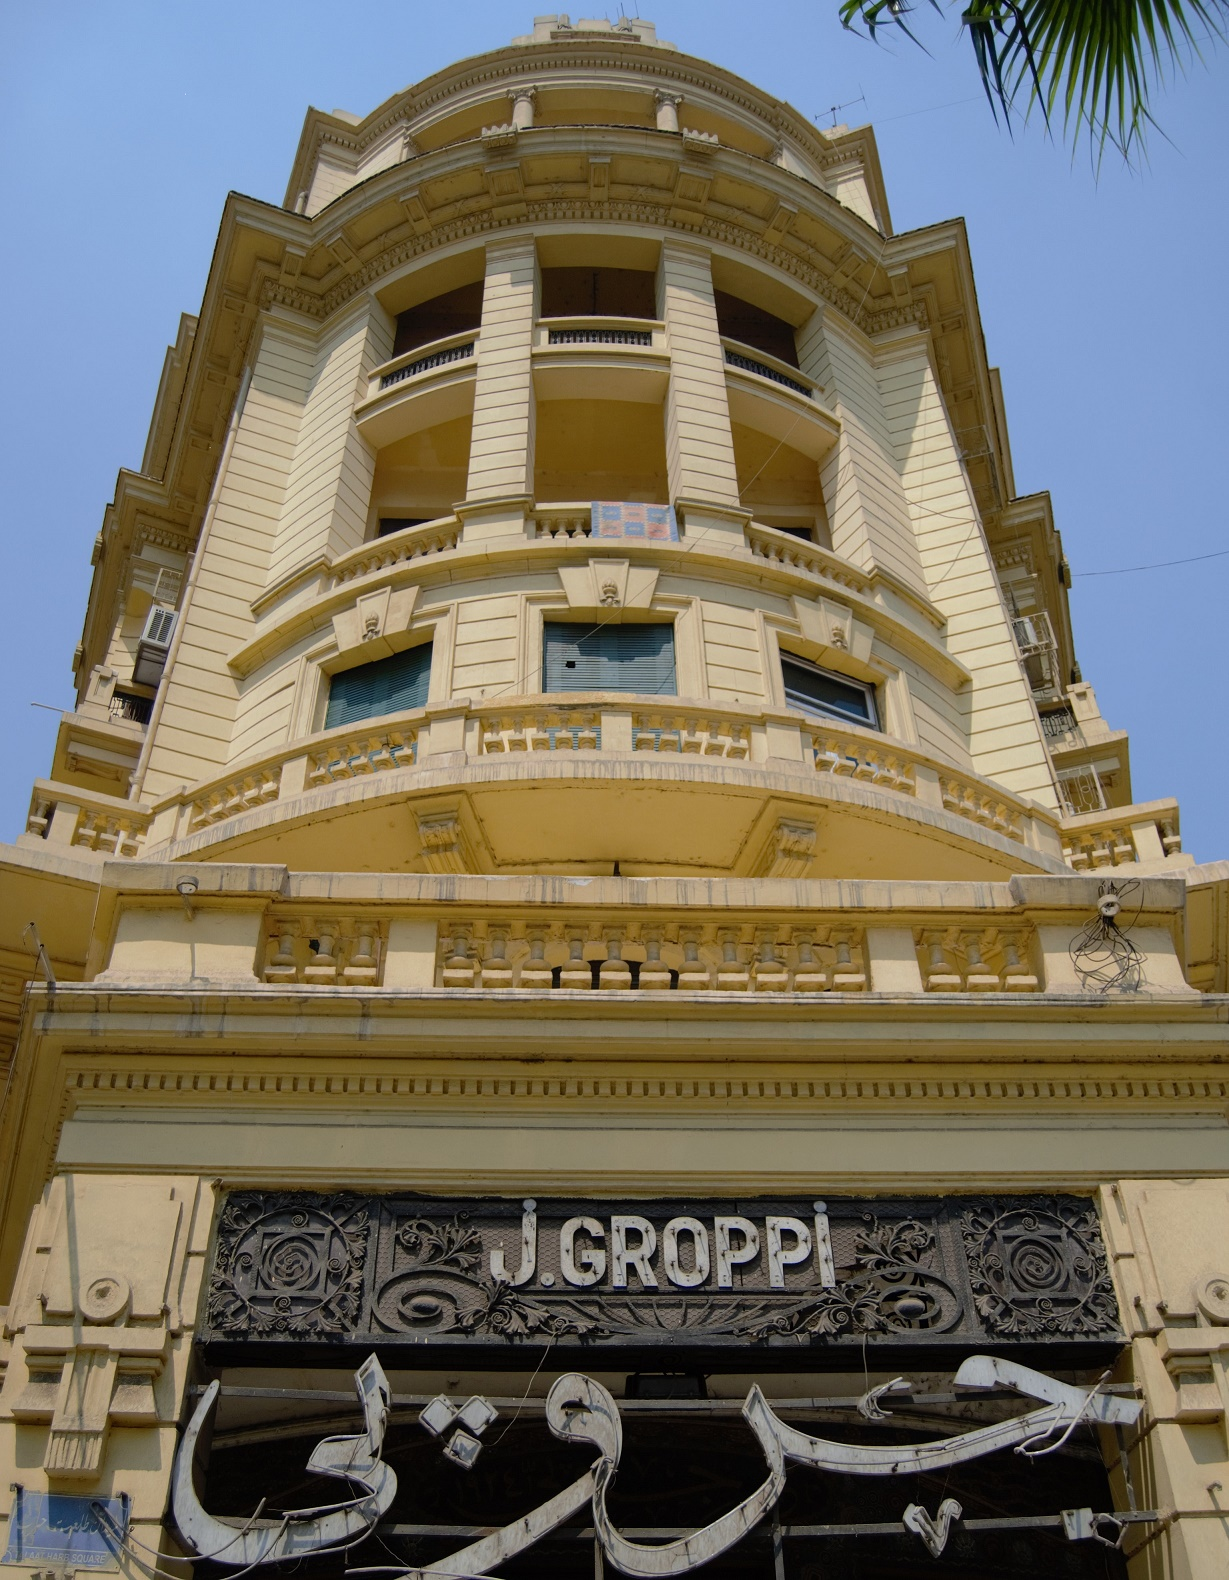 Groppi Cafe downtown Talaat Harb